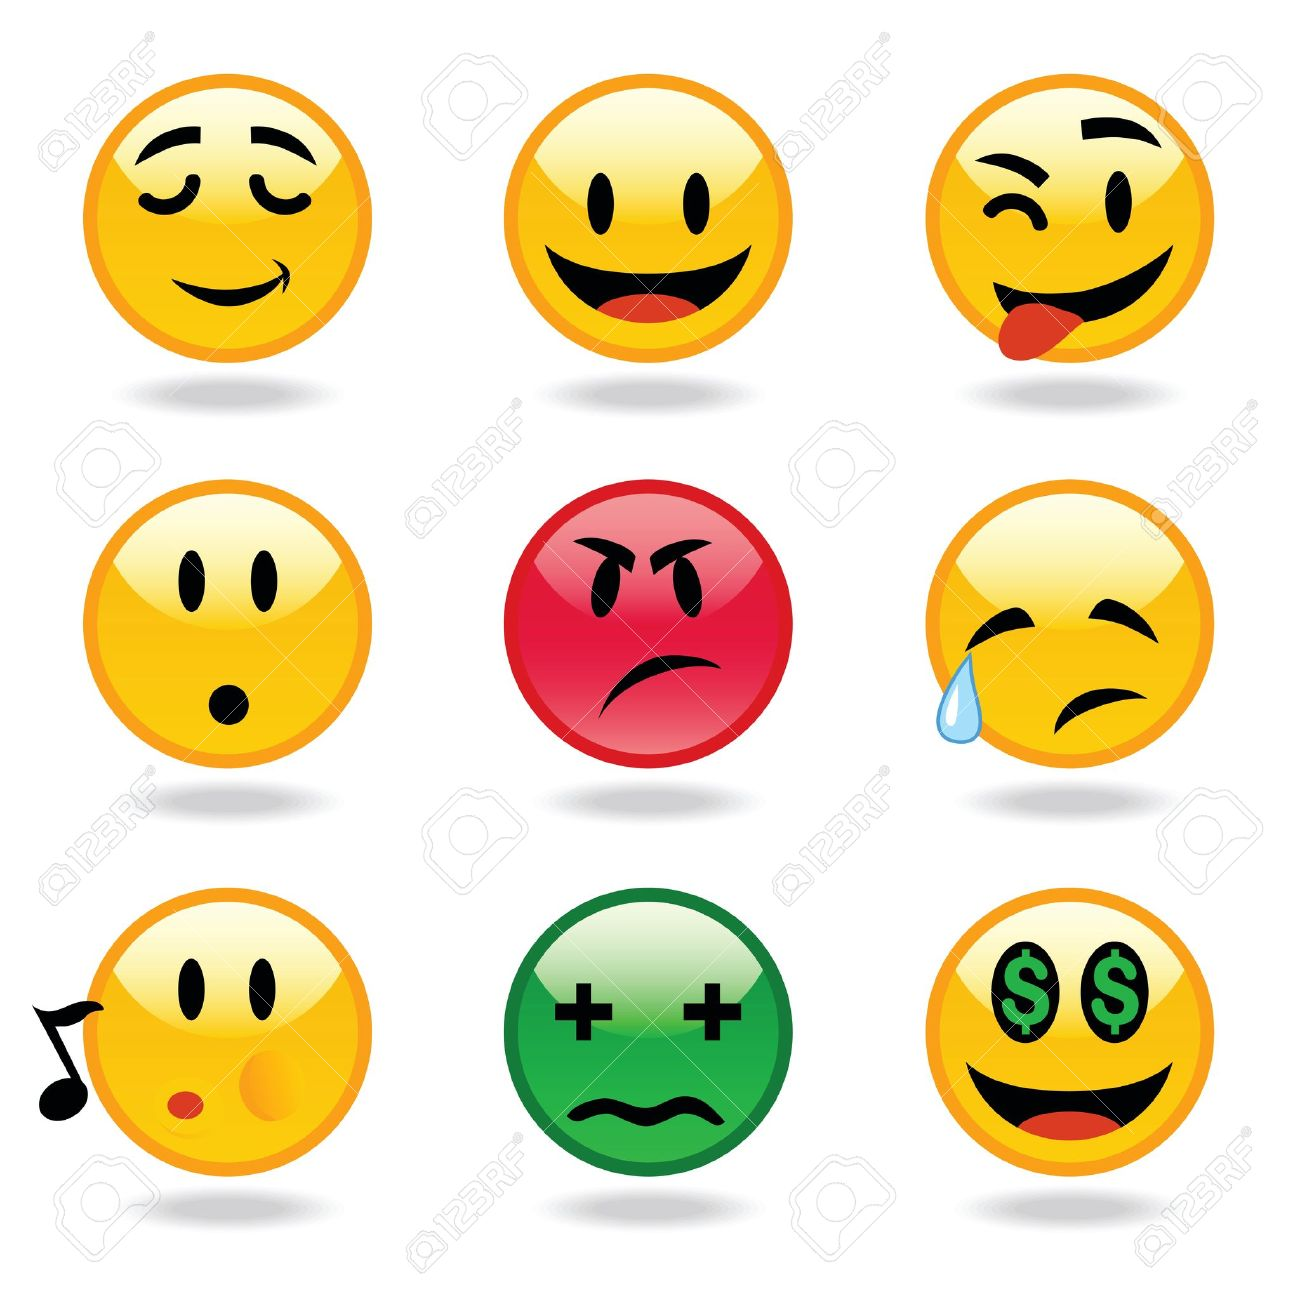 Many Facial Expression of smileys - 17000125